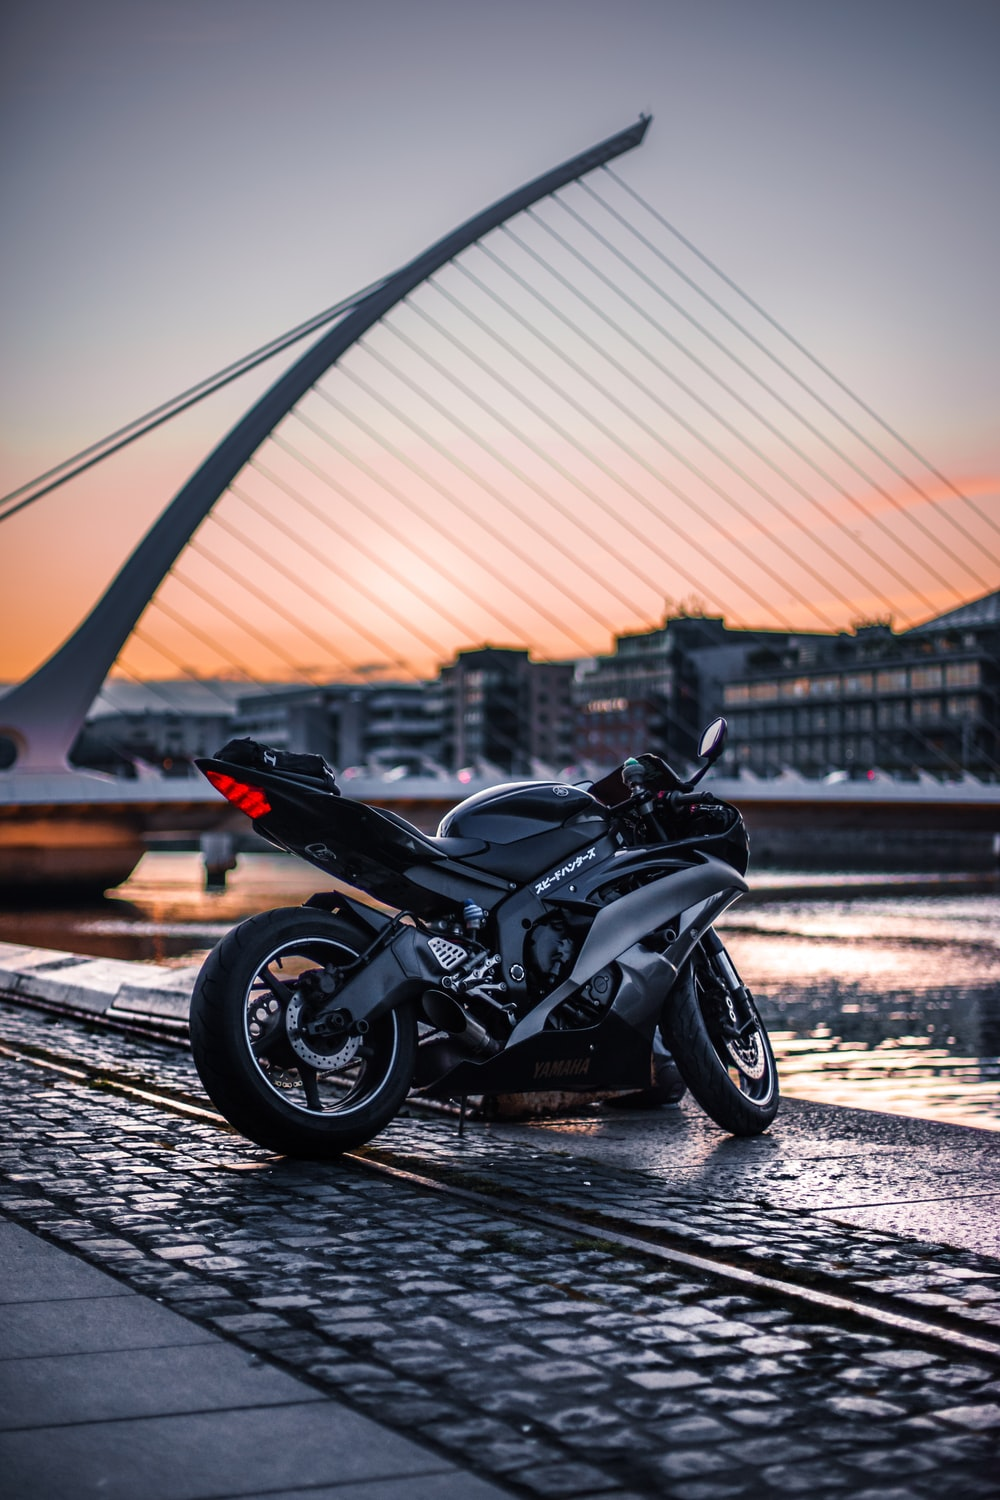 Motorbike pictures download free images stock photos - Best wallpapers of cars and bikes ...